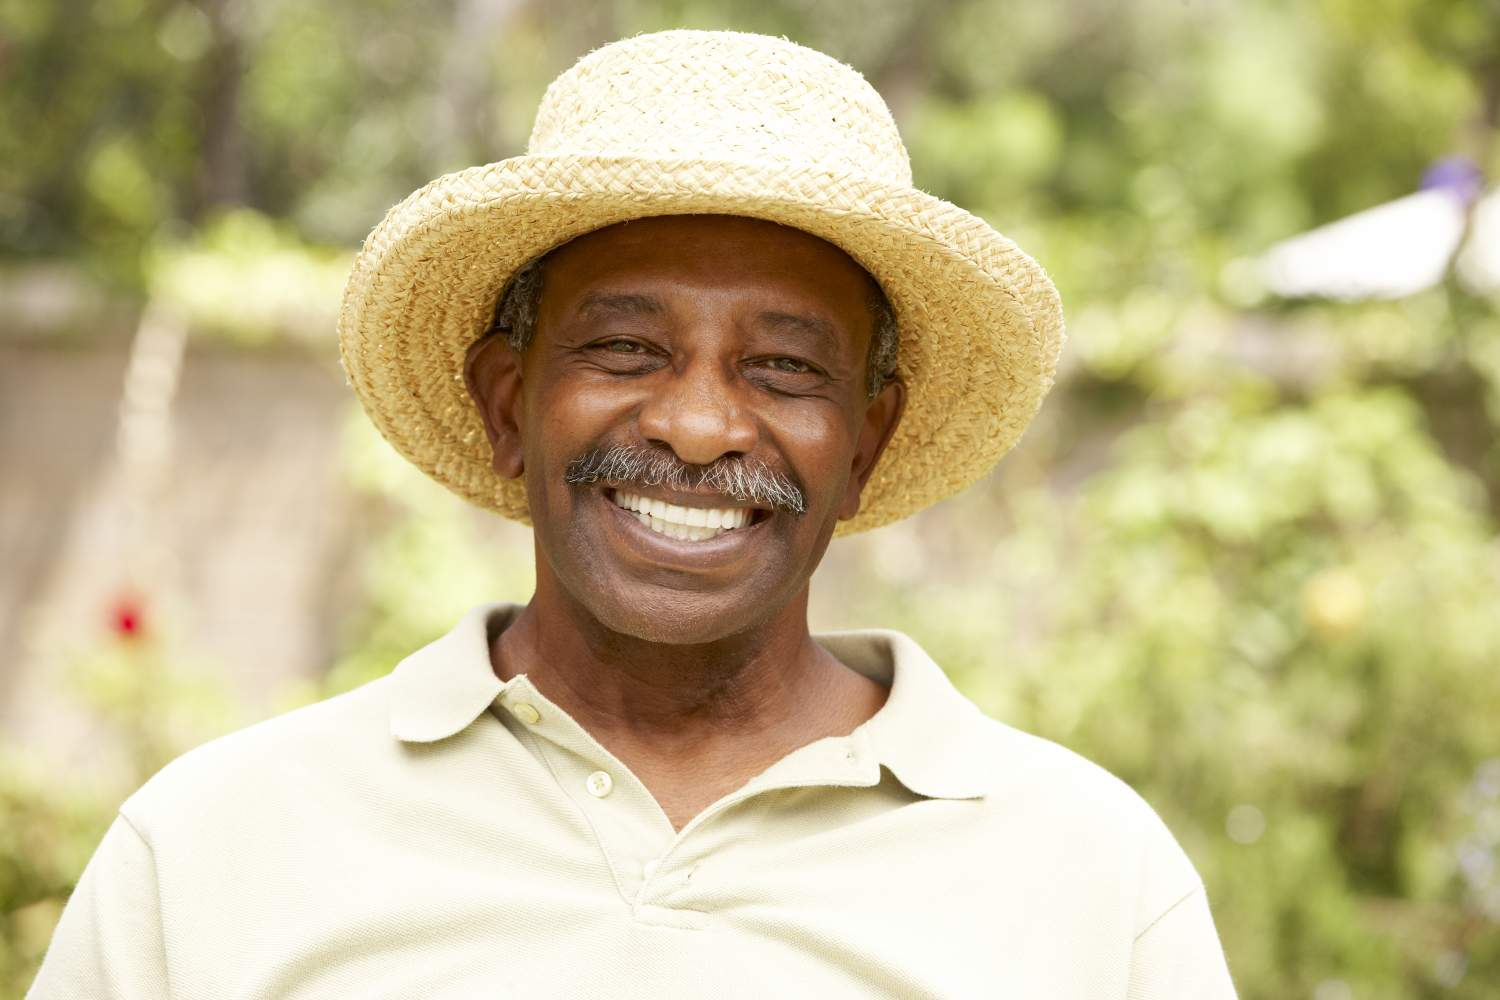 A happy mature man with a moustahce enjoying his holiday in a straw hat in a A Guide for Movember 2019